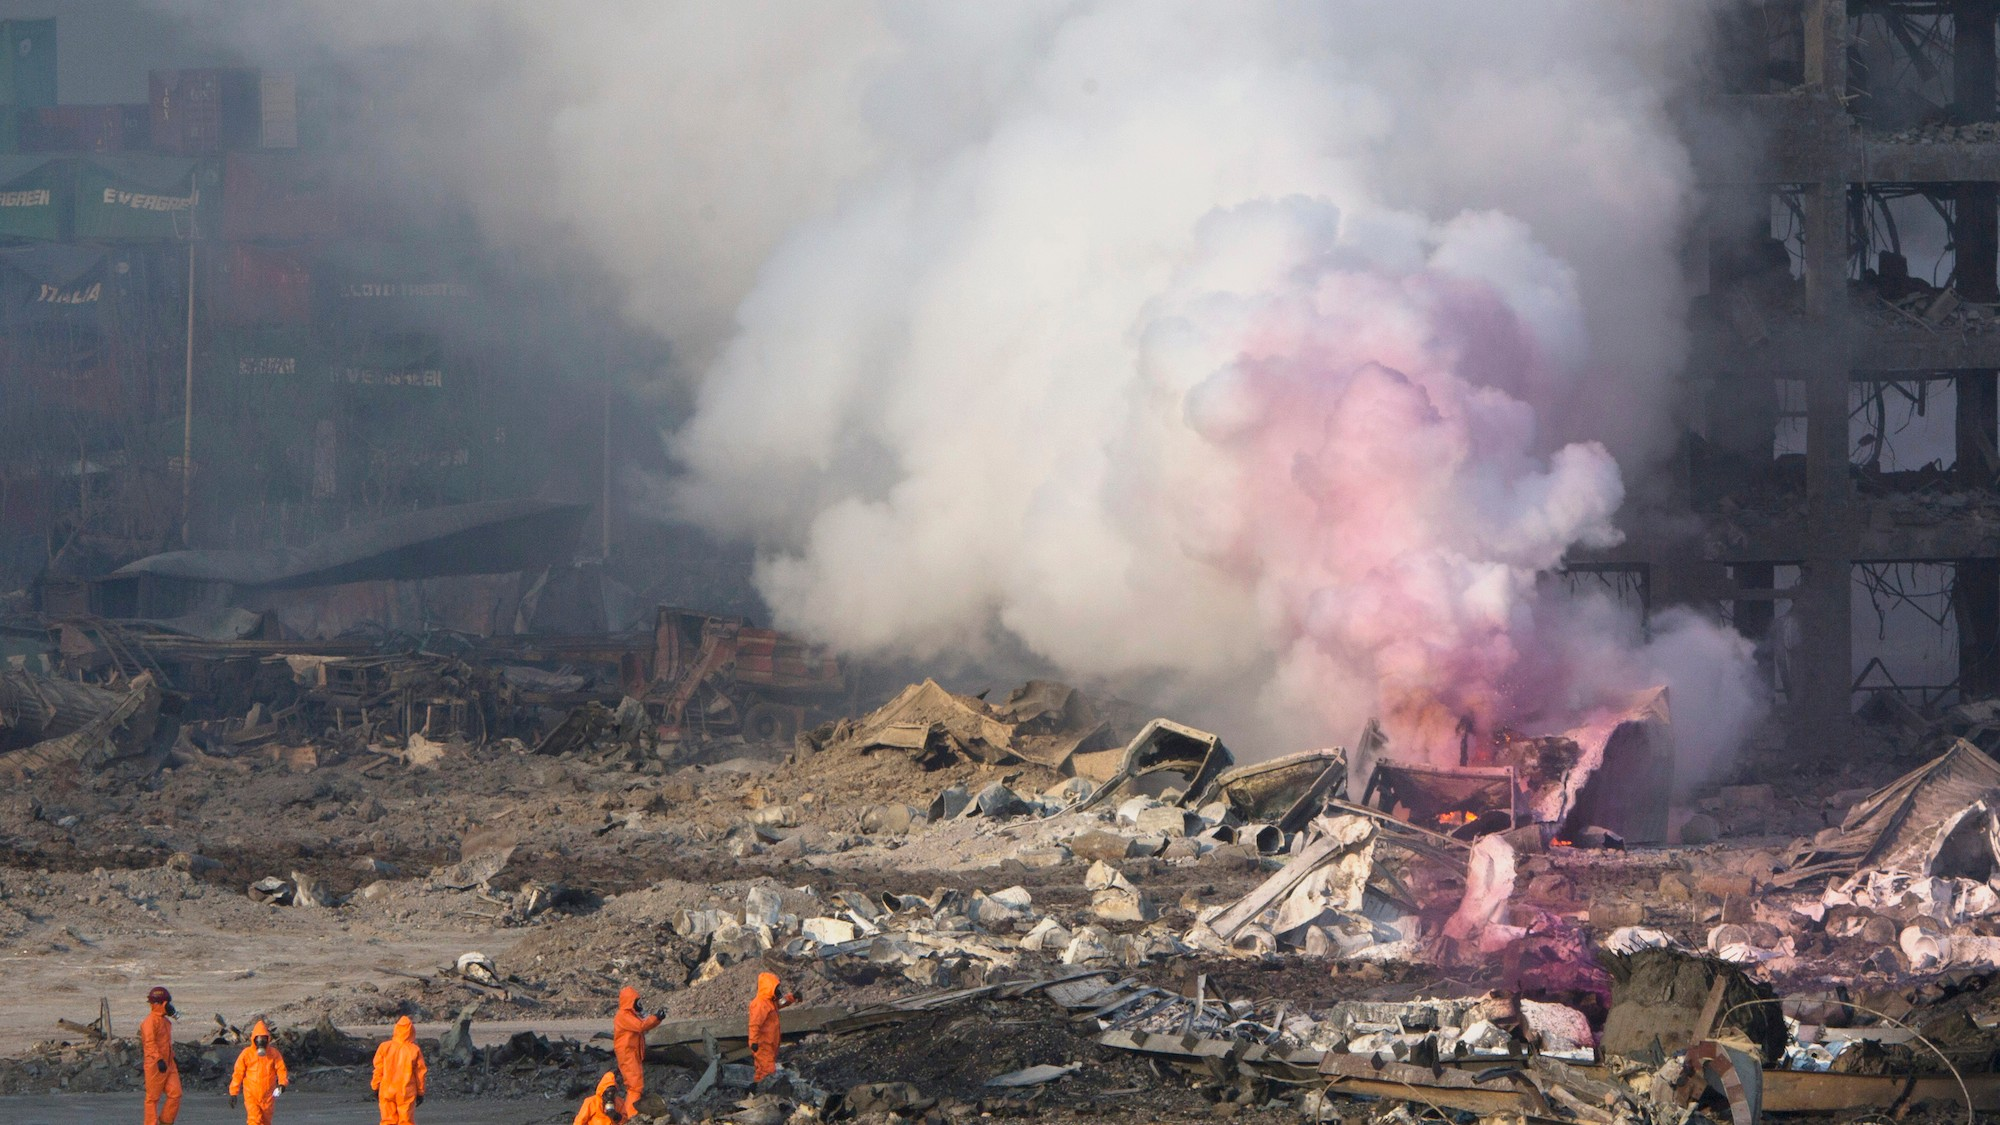 A Chemist on Reddit Just Explained What May Have Caused China's Deadly Explosion